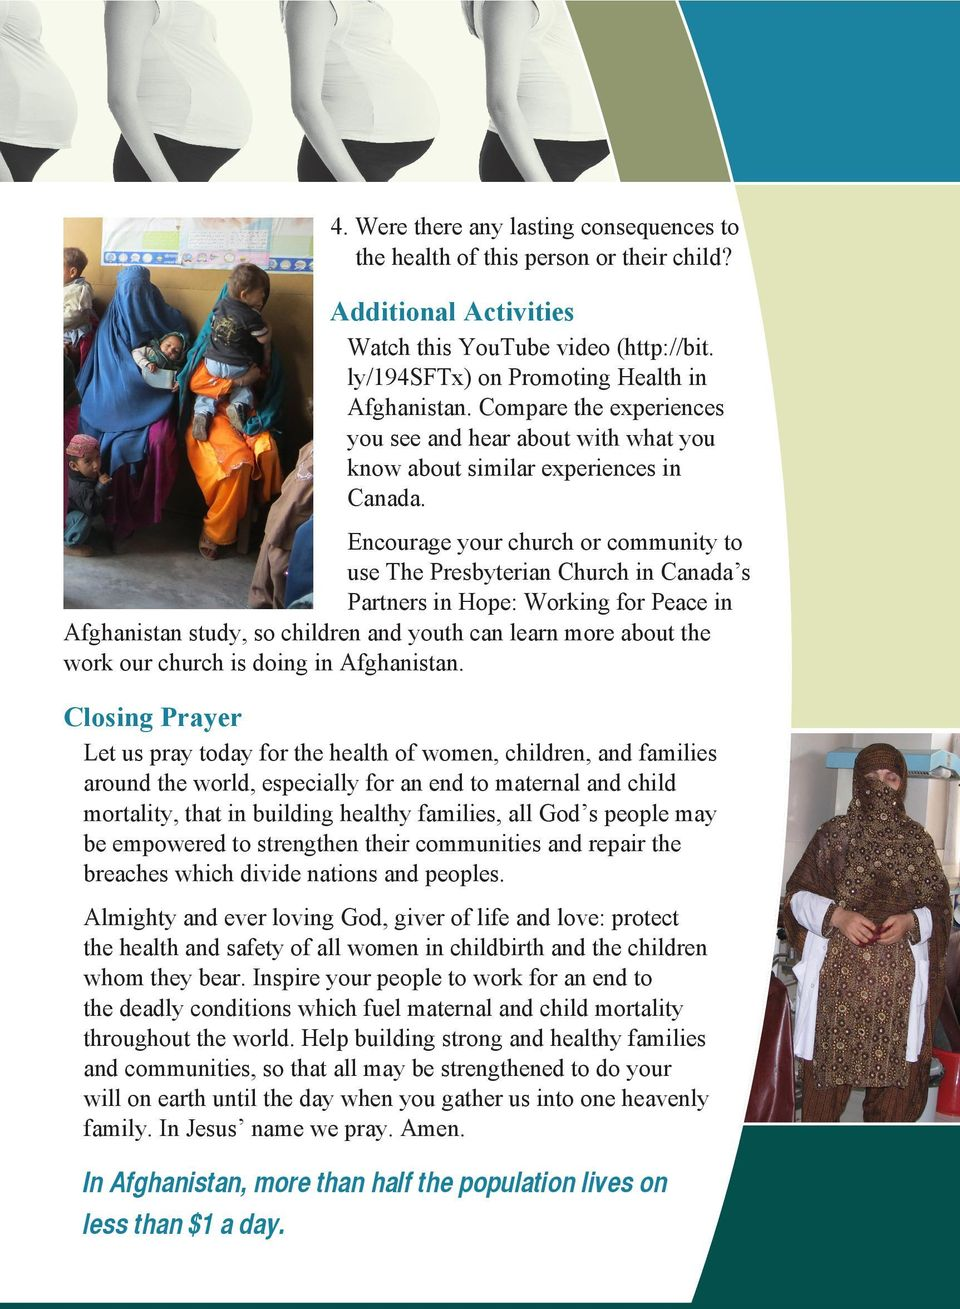 Encourage your church or community to use The Presbyterian Church in Canada s Partners in Hope: Working for Peace in Afghanistan study, so children and youth can learn more about the work our church